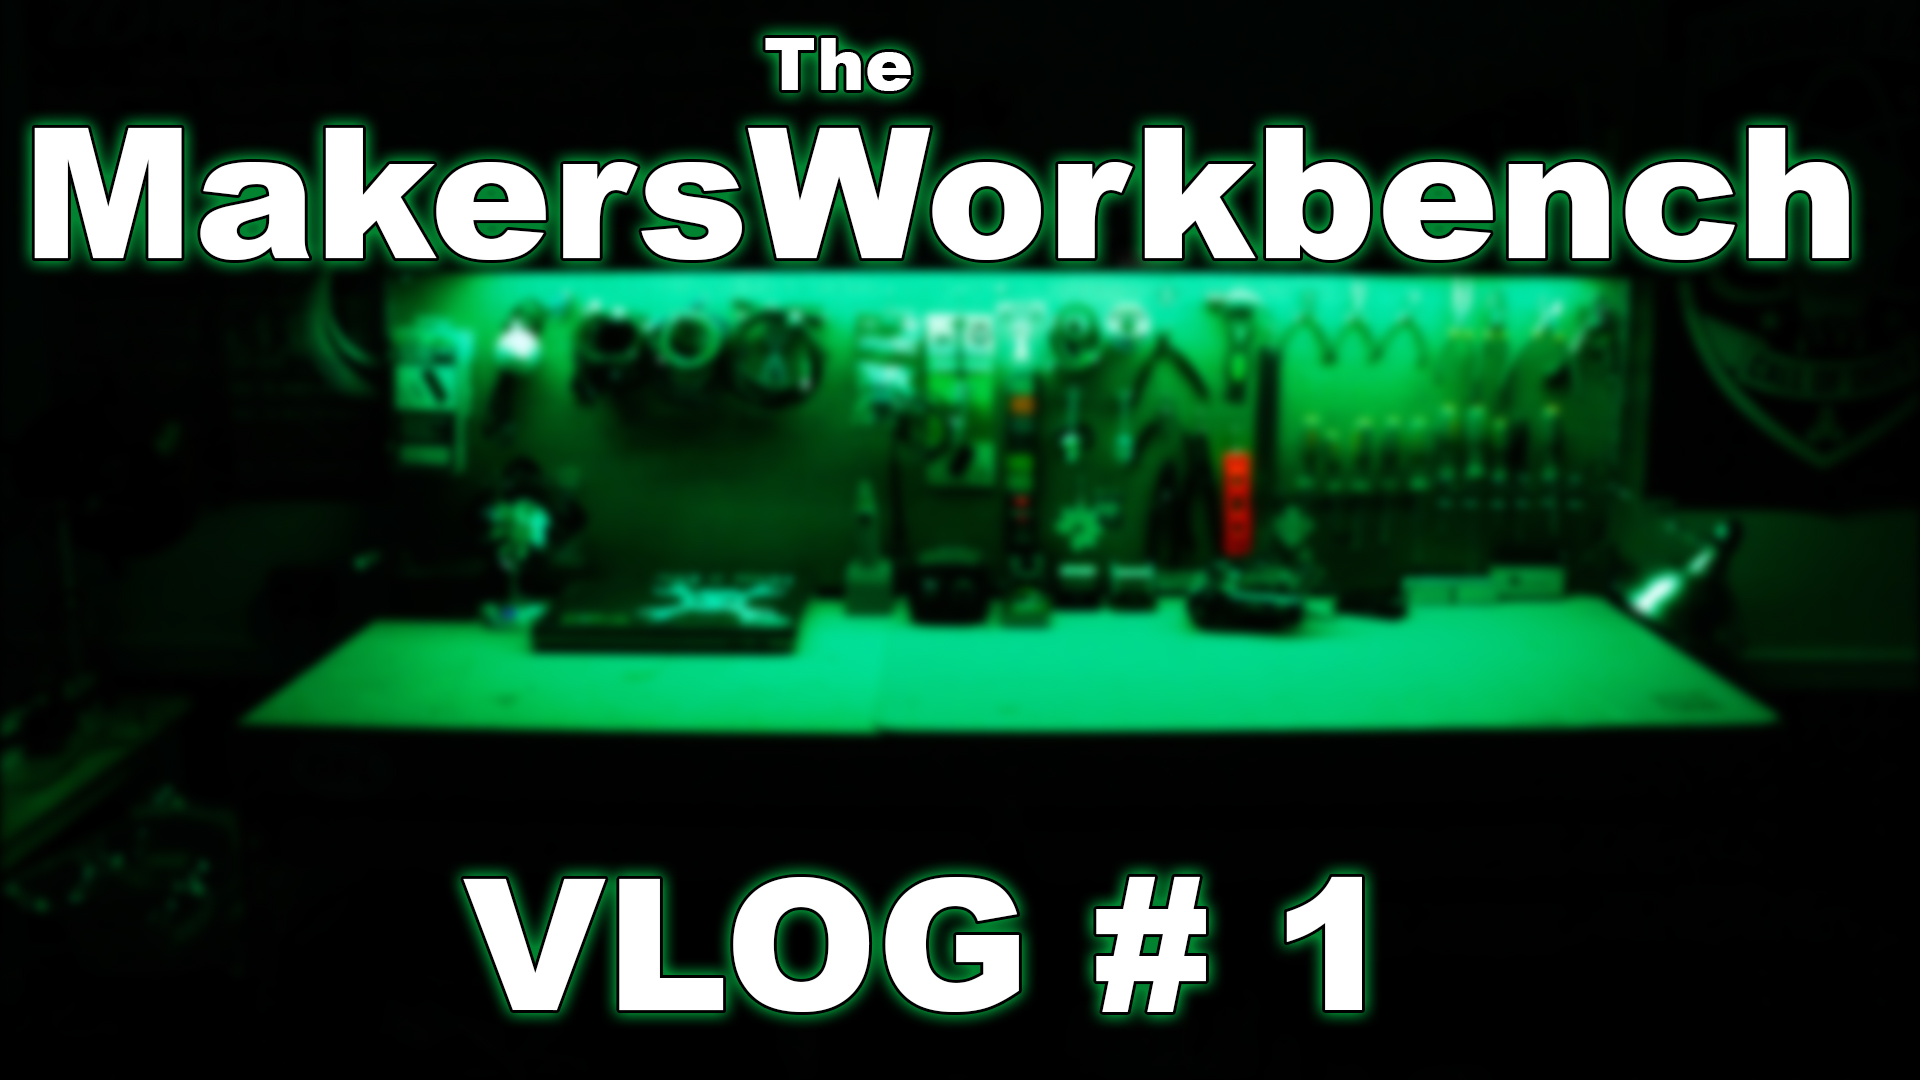 TheMakersWorkbench VLOG